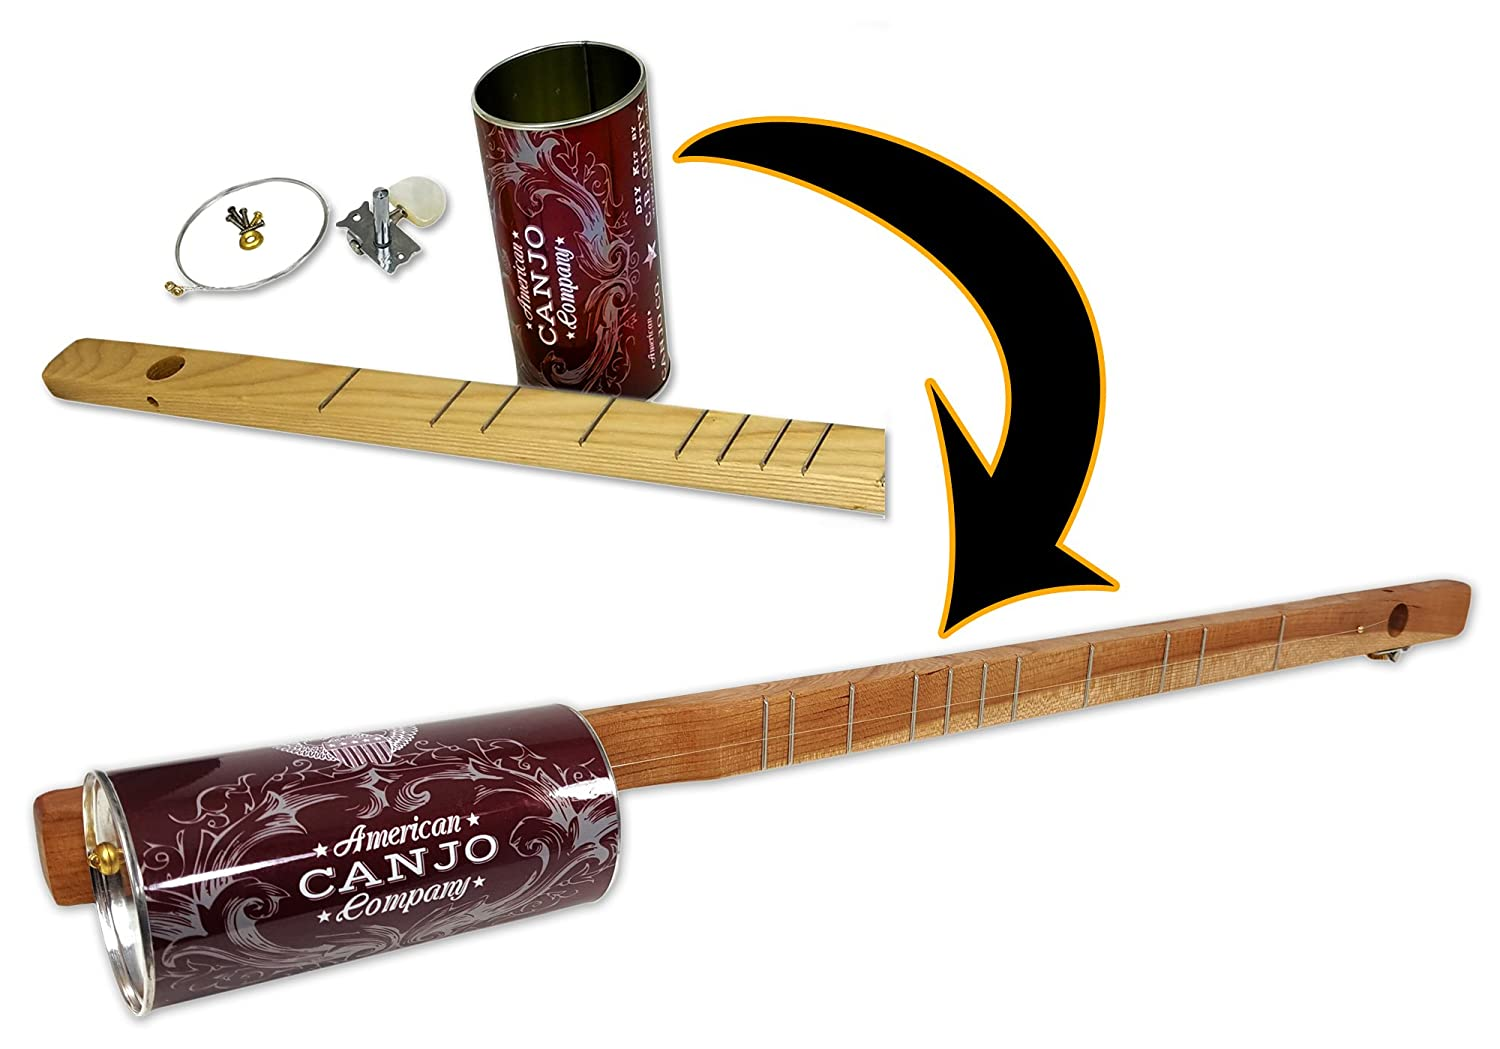 One-string Canjo (Tin Can Banjo) Kit - a fun, easy-to-play instrument that you build yourself!